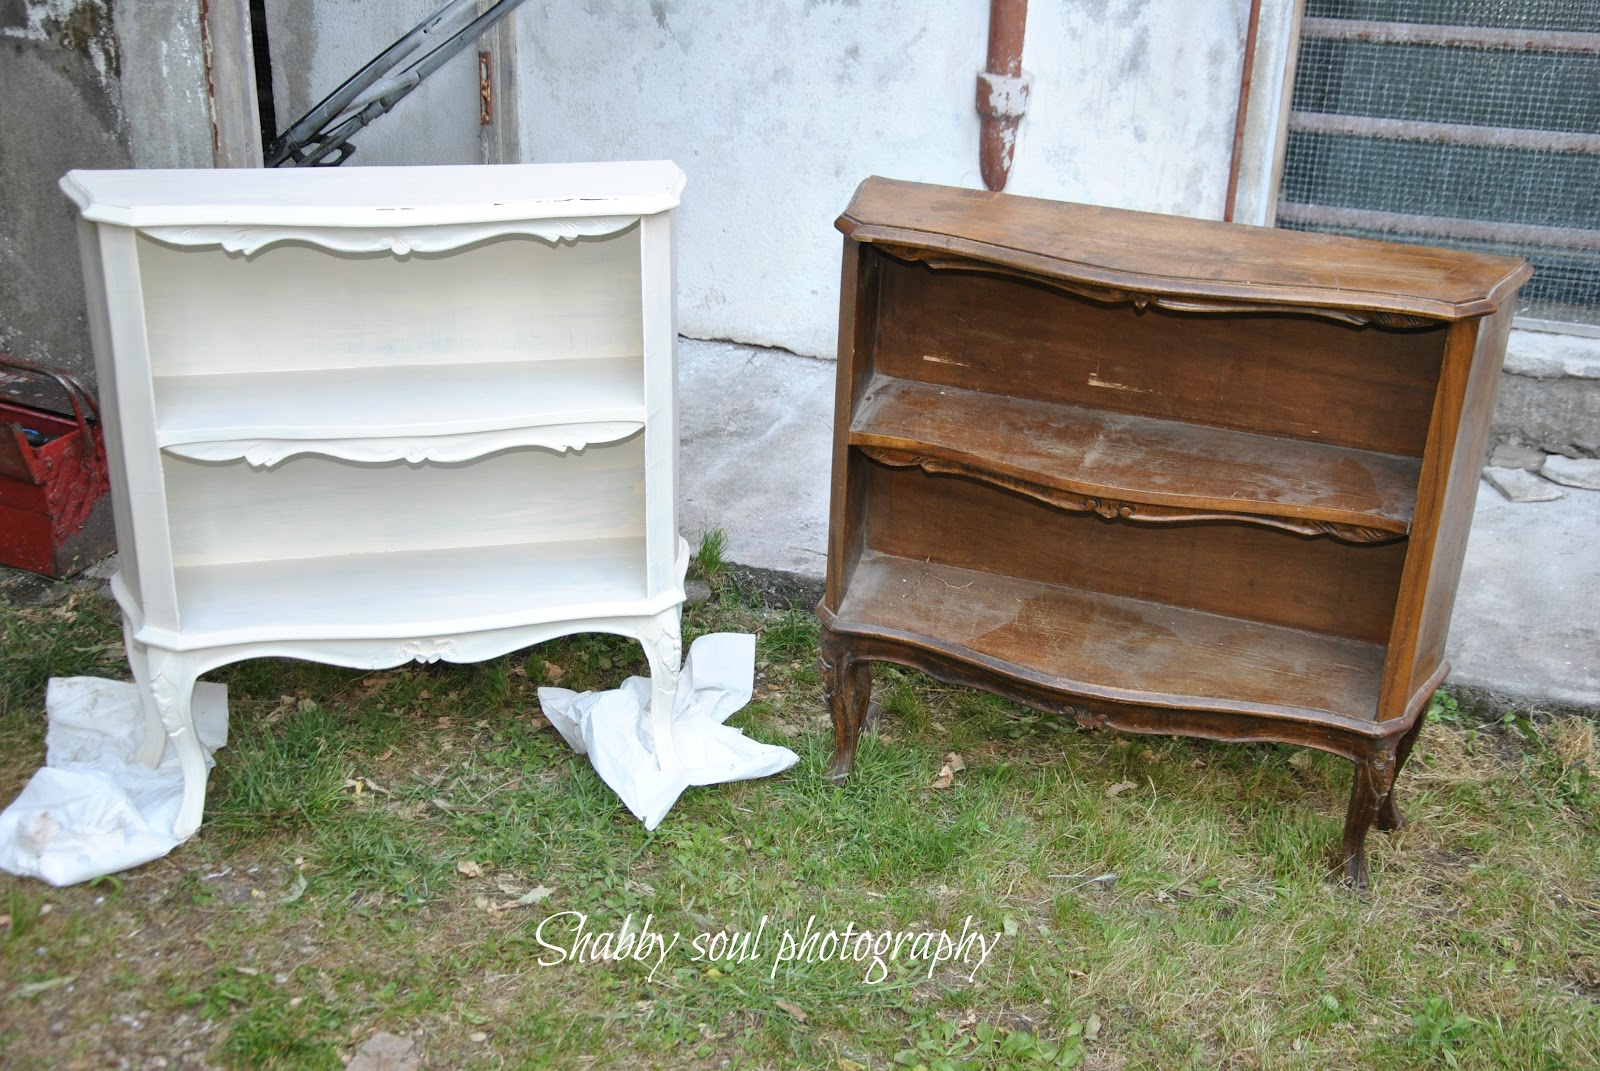 Shabby soul my homemade chalkpaint - Ridipingere un mobile ...